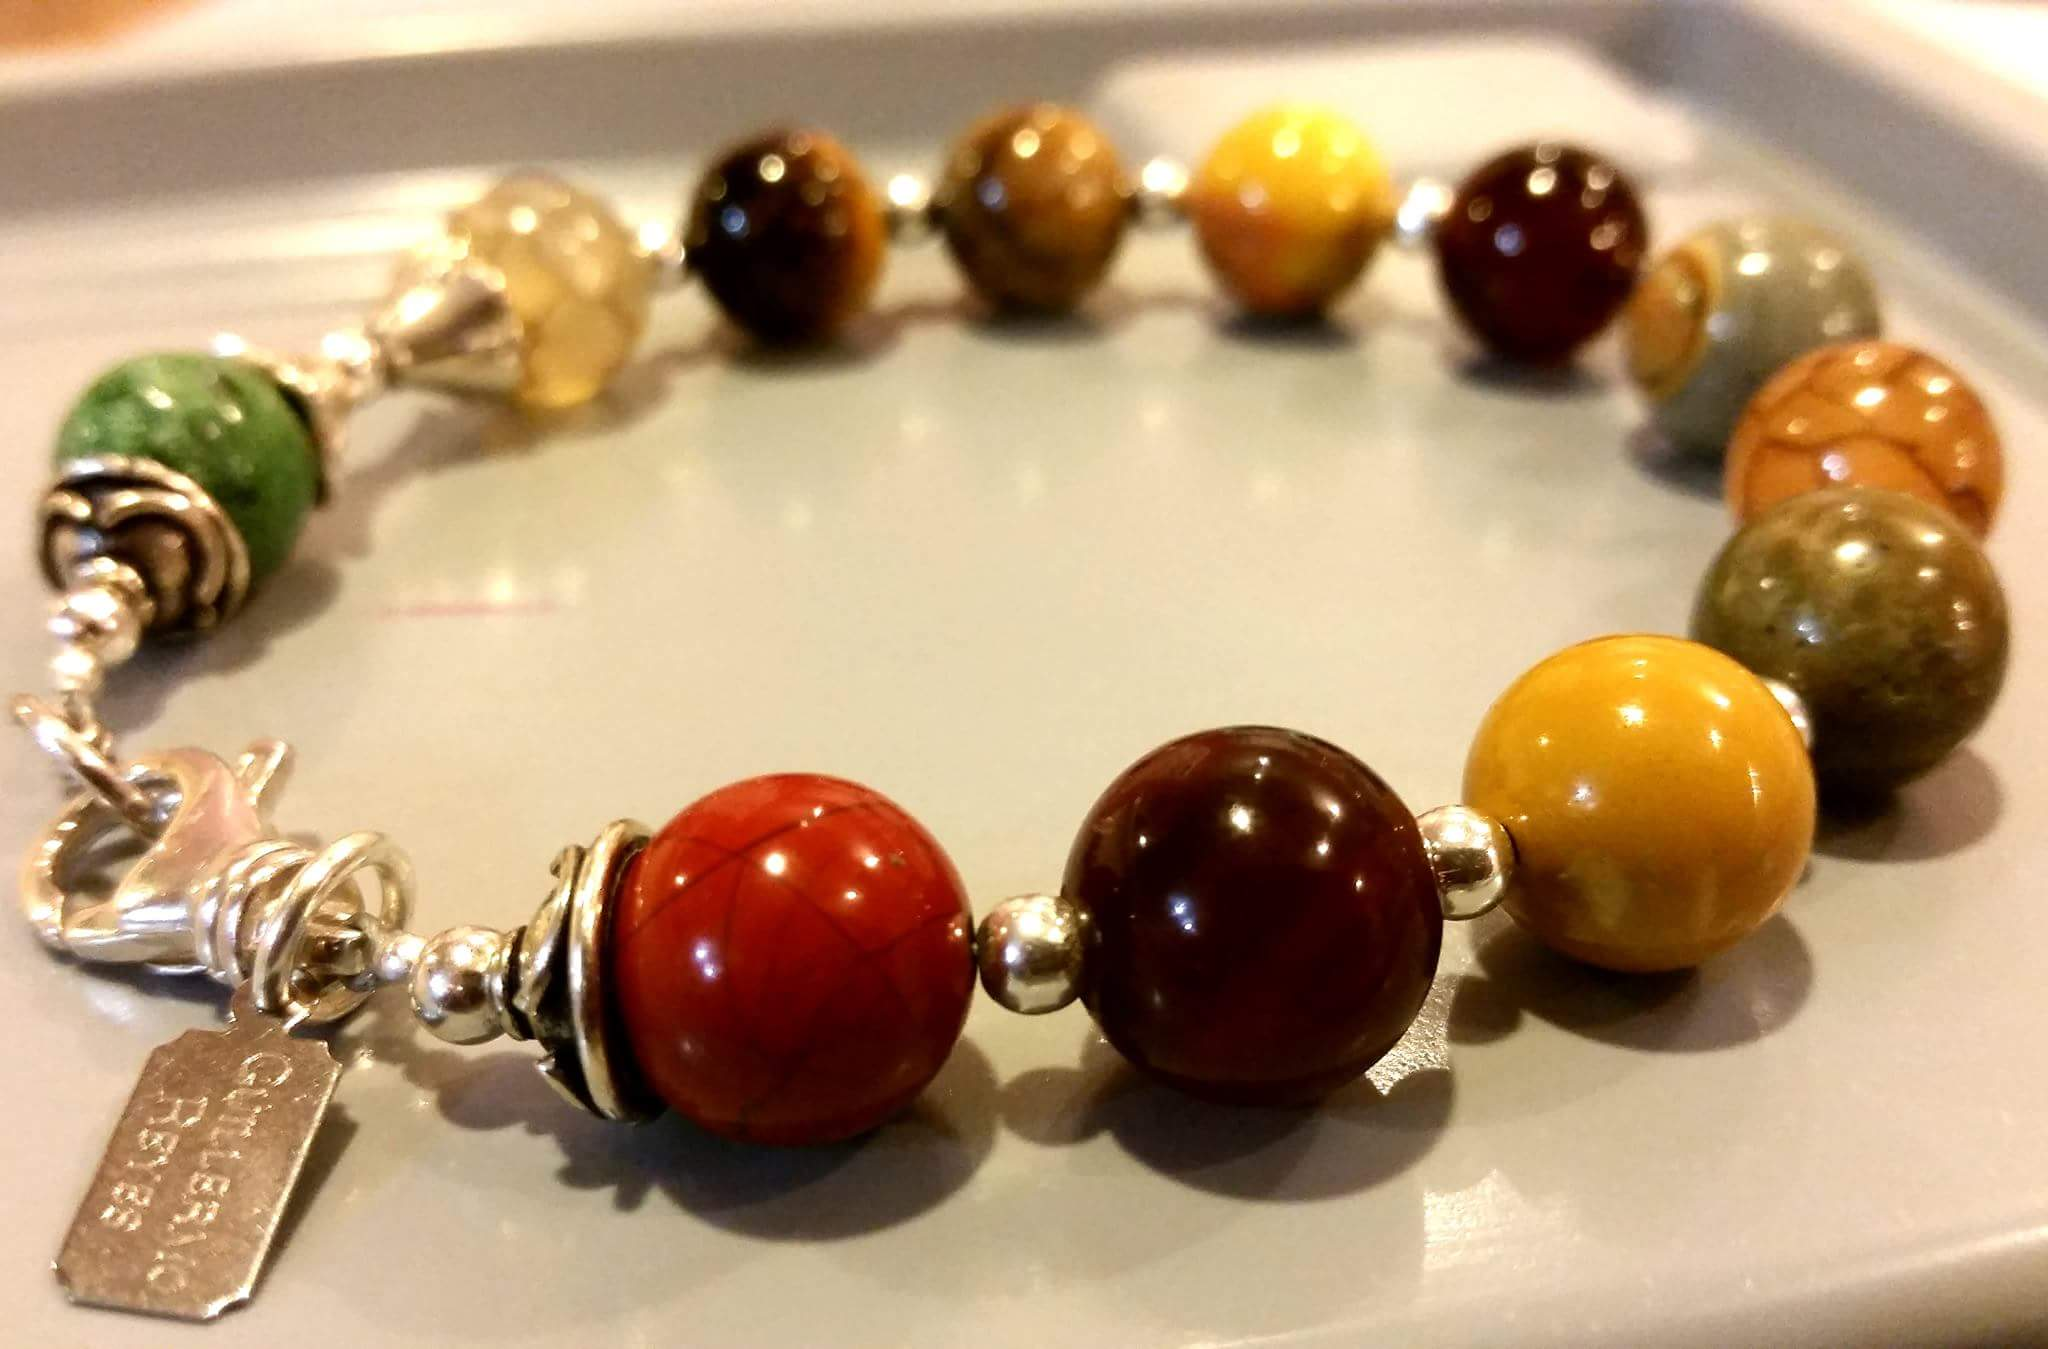 TIGERS EYE BRACELET - TRADITIONAL STONES AND SILVER FINDINGS - 8MM